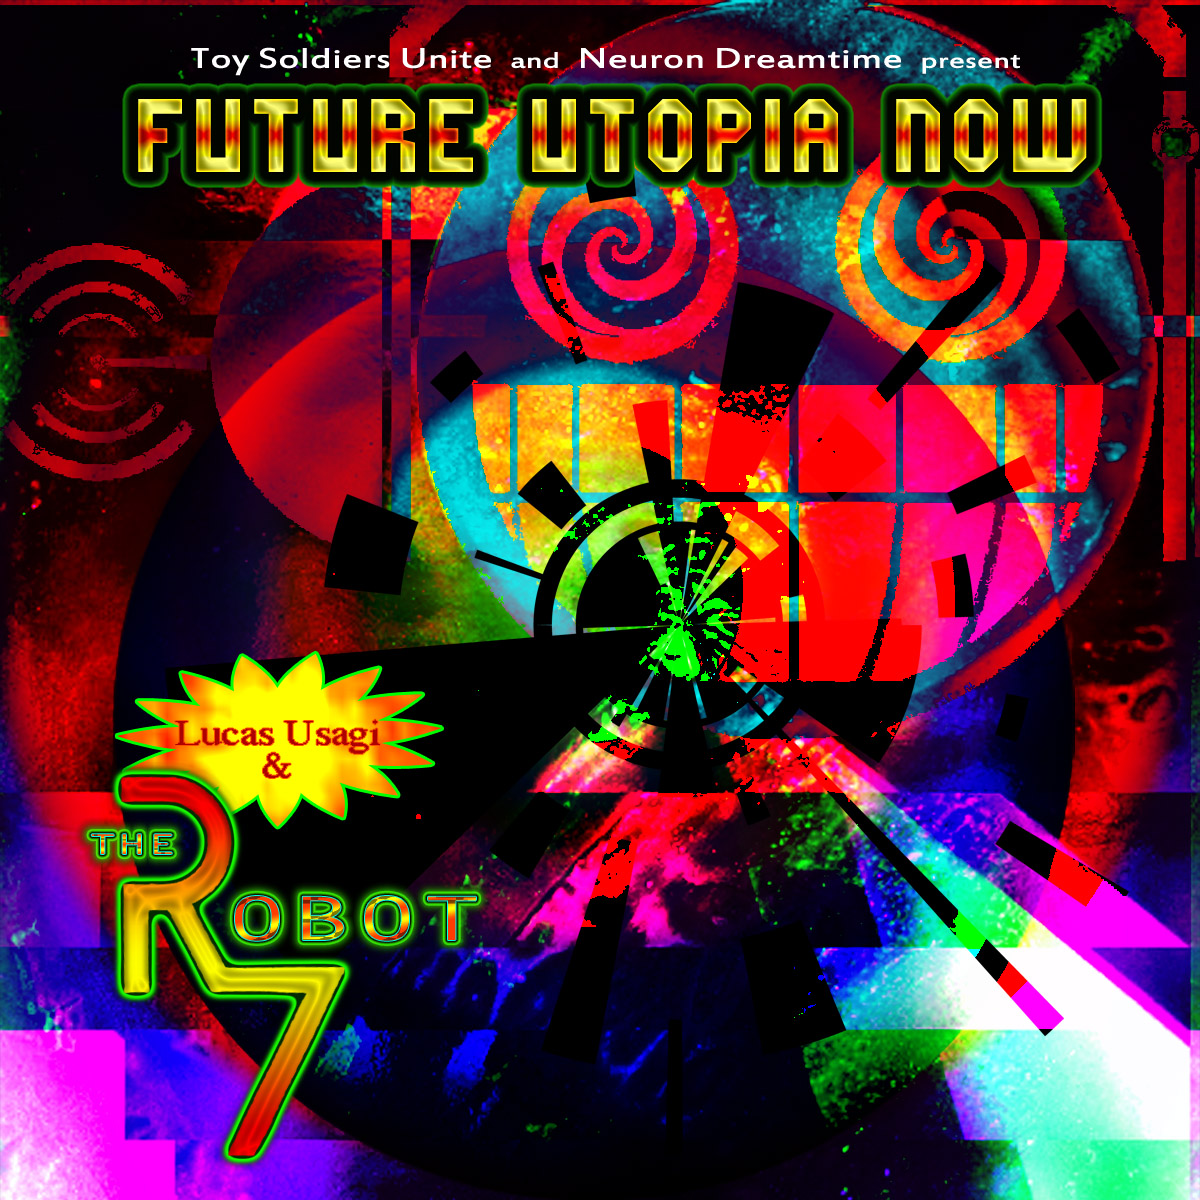 Lucas Usagi & The Robot 7 - Future Utopia Now